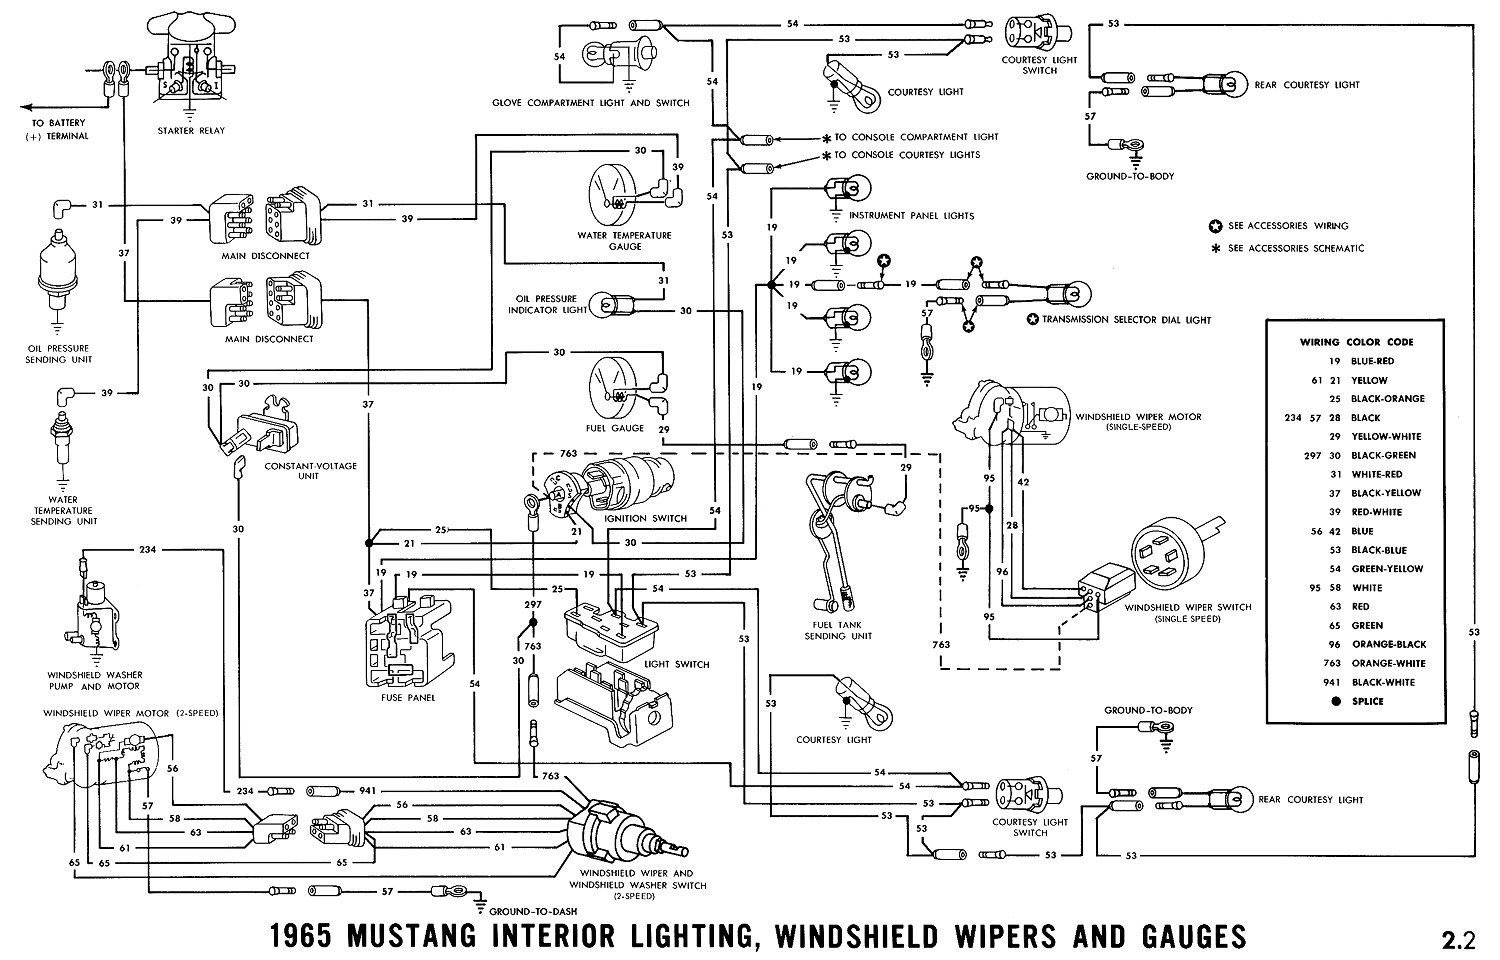 1965g 1965 mustang wiring diagrams average joe restoration 1966 mustang ignition switch wiring diagram at n-0.co